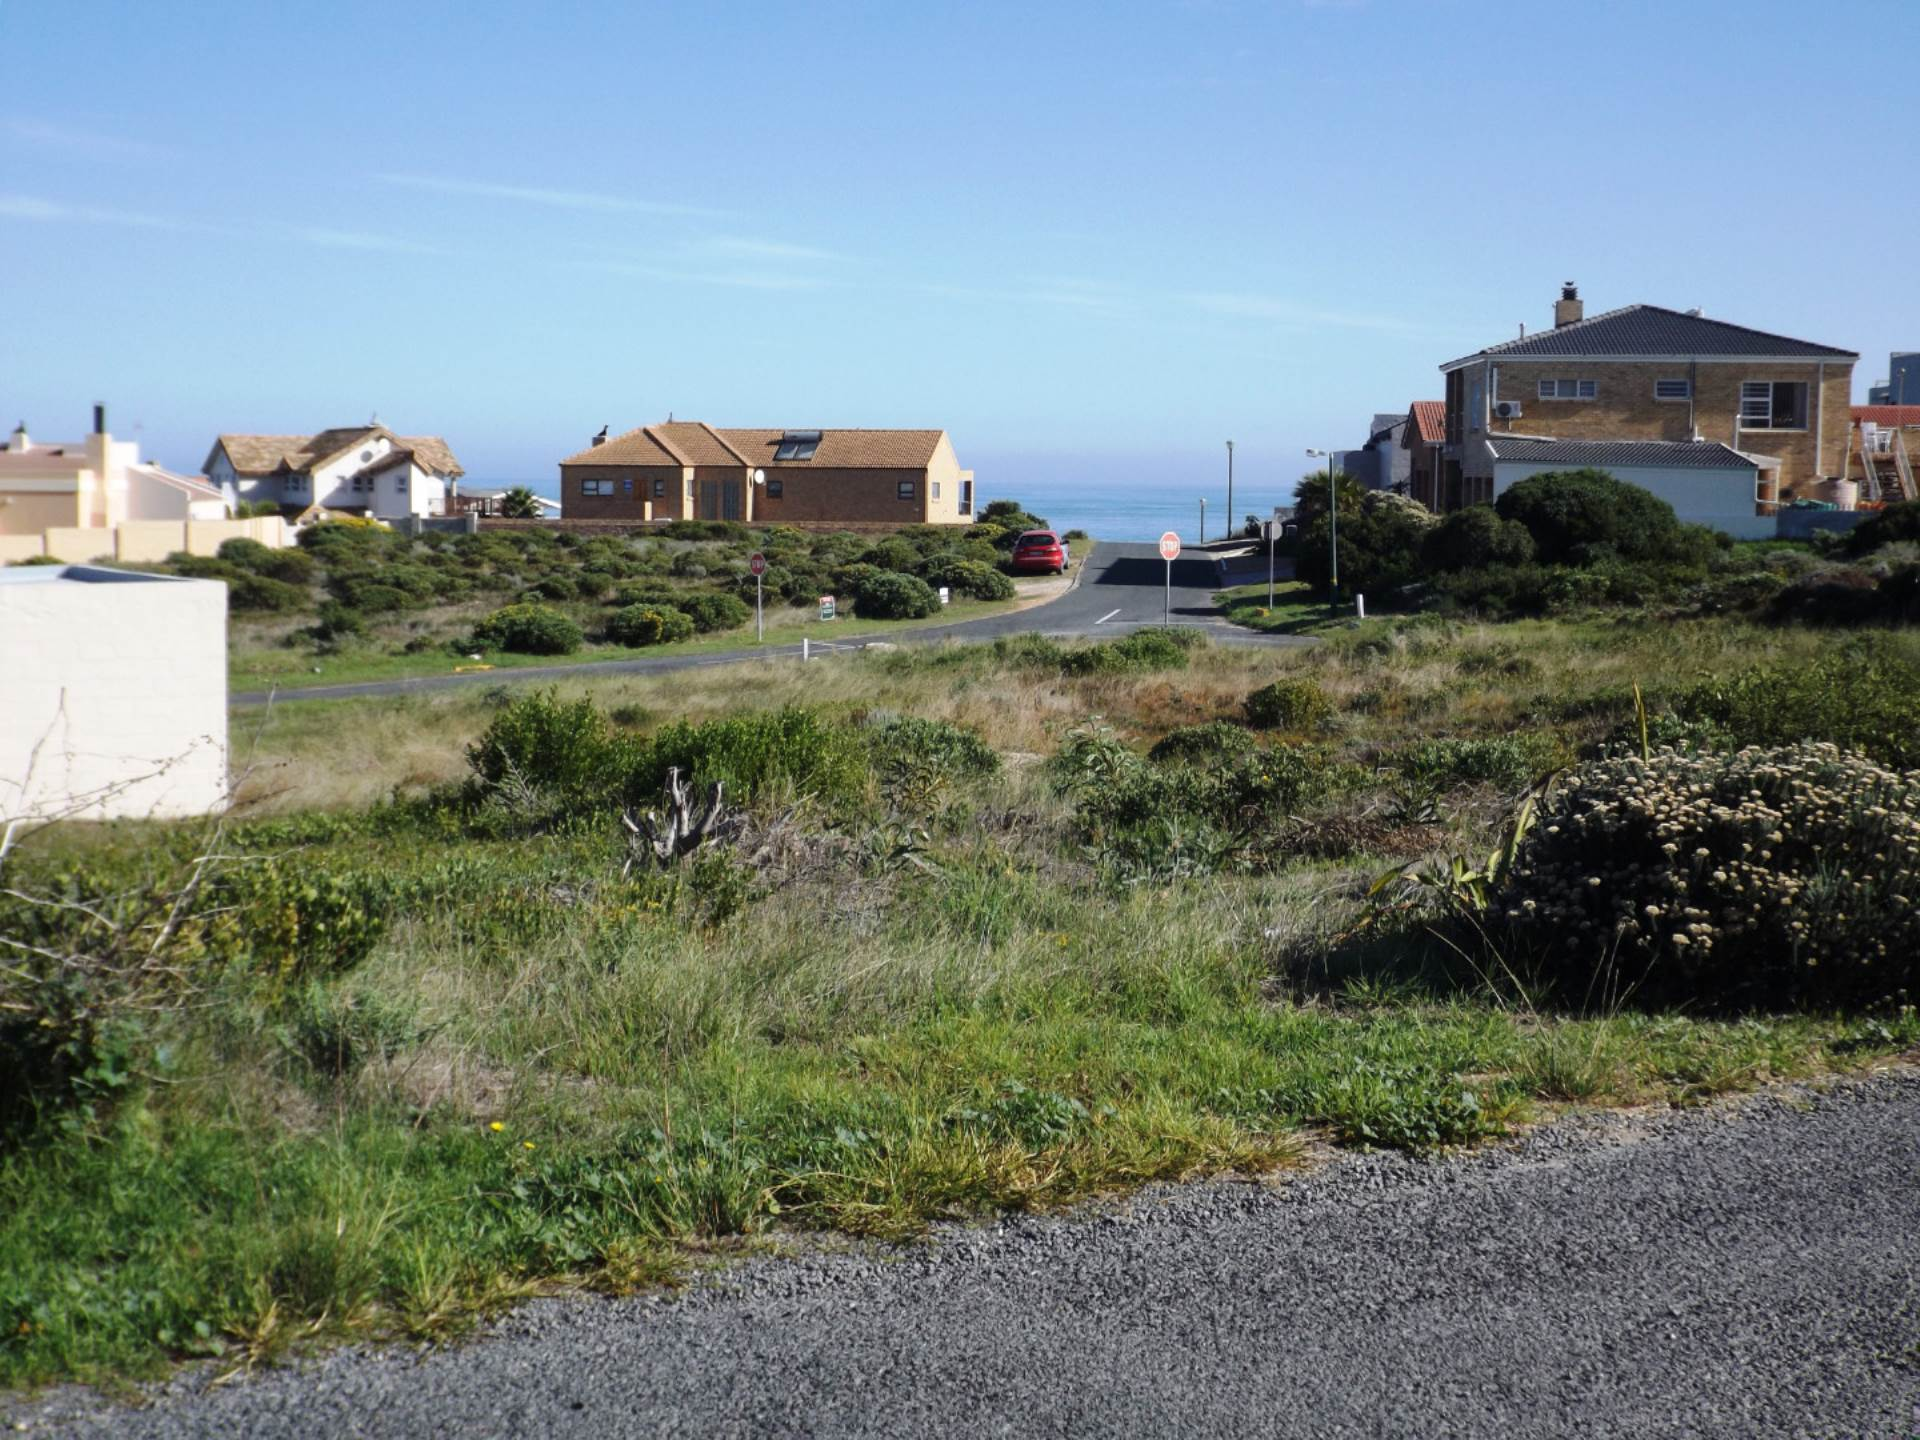 As from our Plot; another vacant Plot across Street. Sea at back.